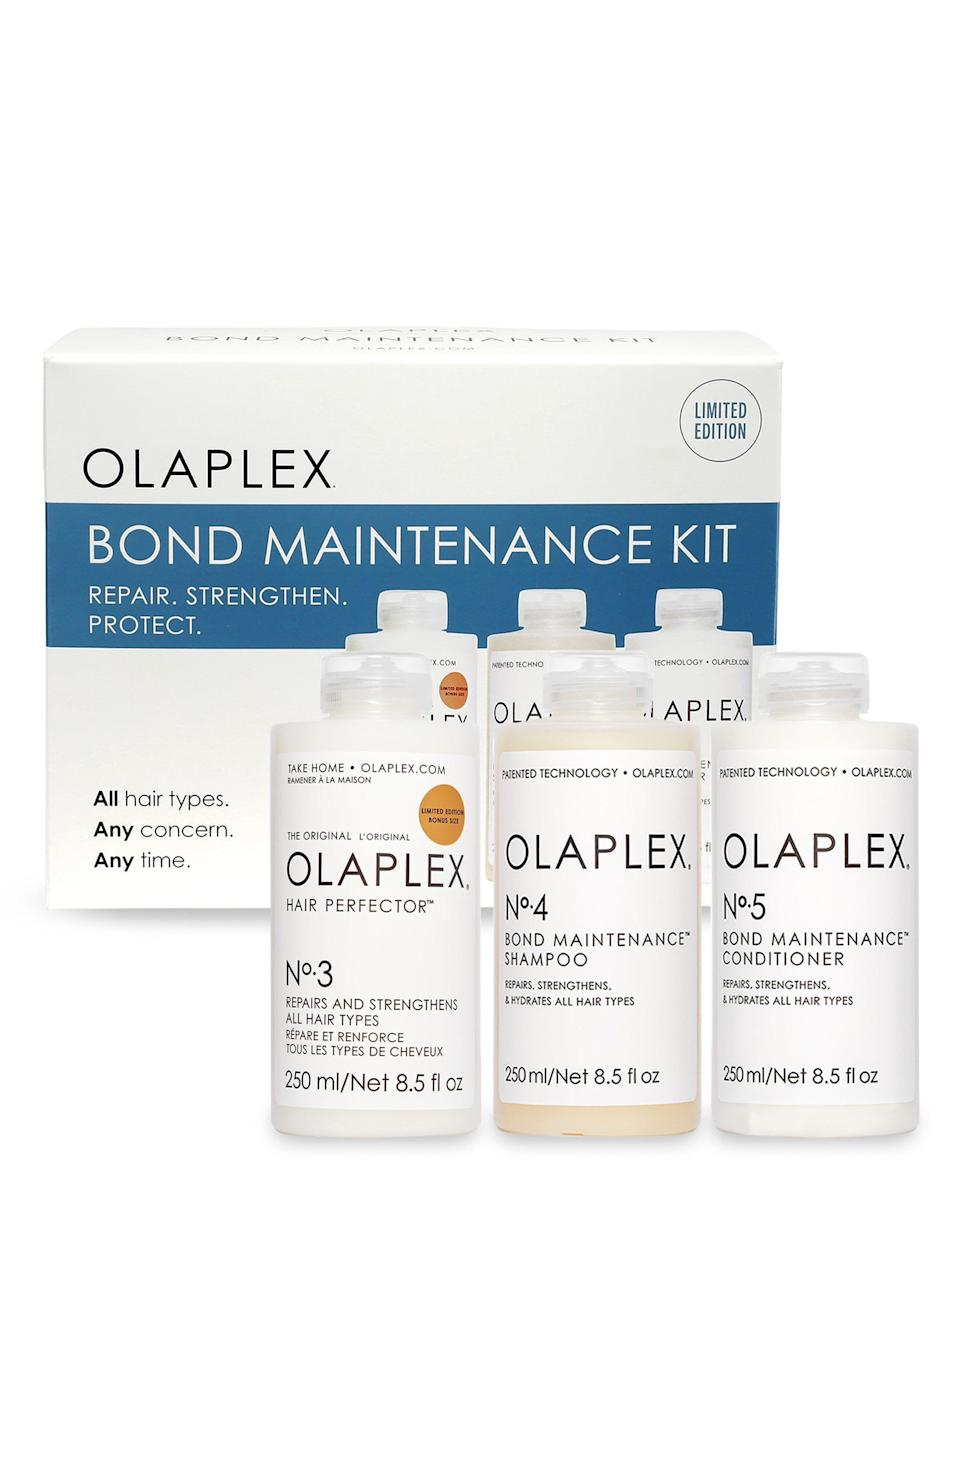 """<p><strong>Olaplex</strong></p><p>nordstrom.com</p><p><strong>$84.00</strong></p><p><a href=""""https://go.redirectingat.com?id=74968X1596630&url=https%3A%2F%2Fwww.nordstrom.com%2Fs%2Folaplex-bond-maintenance-hair-care-set-126-value%2F5890360&sref=https%3A%2F%2Fwww.elle.com%2Fbeauty%2Fg36944650%2Fnorstrom-anniversary-beauty-sale-2021%2F"""" rel=""""nofollow noopener"""" target=""""_blank"""" data-ylk=""""slk:Shop Now"""" class=""""link rapid-noclick-resp"""">Shop Now</a></p><p>Look, you know and I both know that your flat iron shouldn't be cranked up to 45o degrees. But we also both know that you're not going to stop. So instead grab these bottles from Olaplex to fix those crispy, straw-like strands.</p>"""